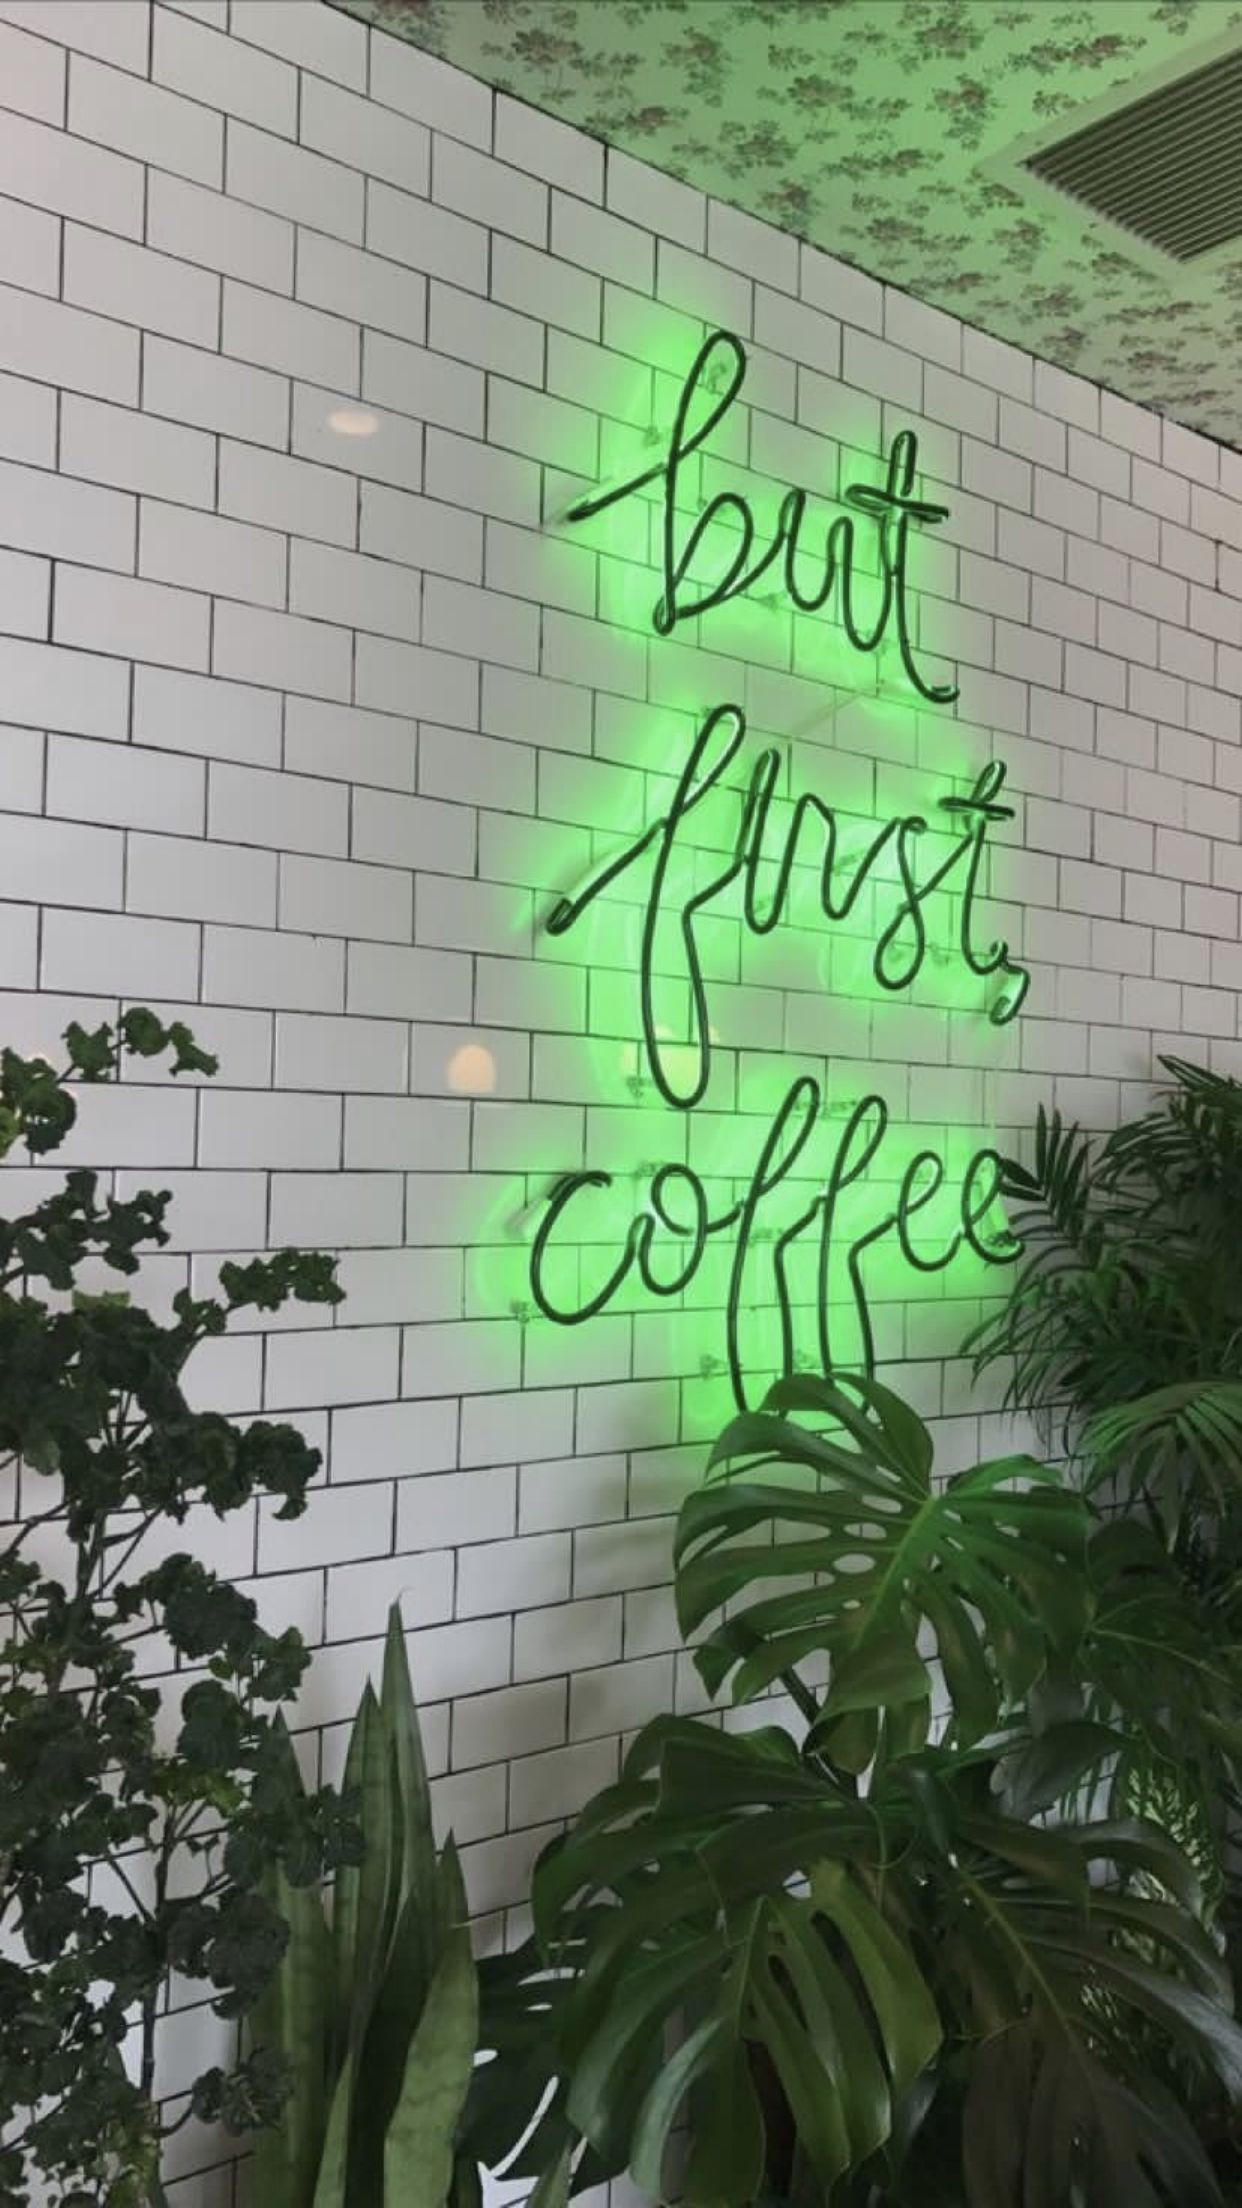 Pin by 𝕗𝕖𝕝𝕝𝕪 on AESTHETIC Neon wallpaper, Green